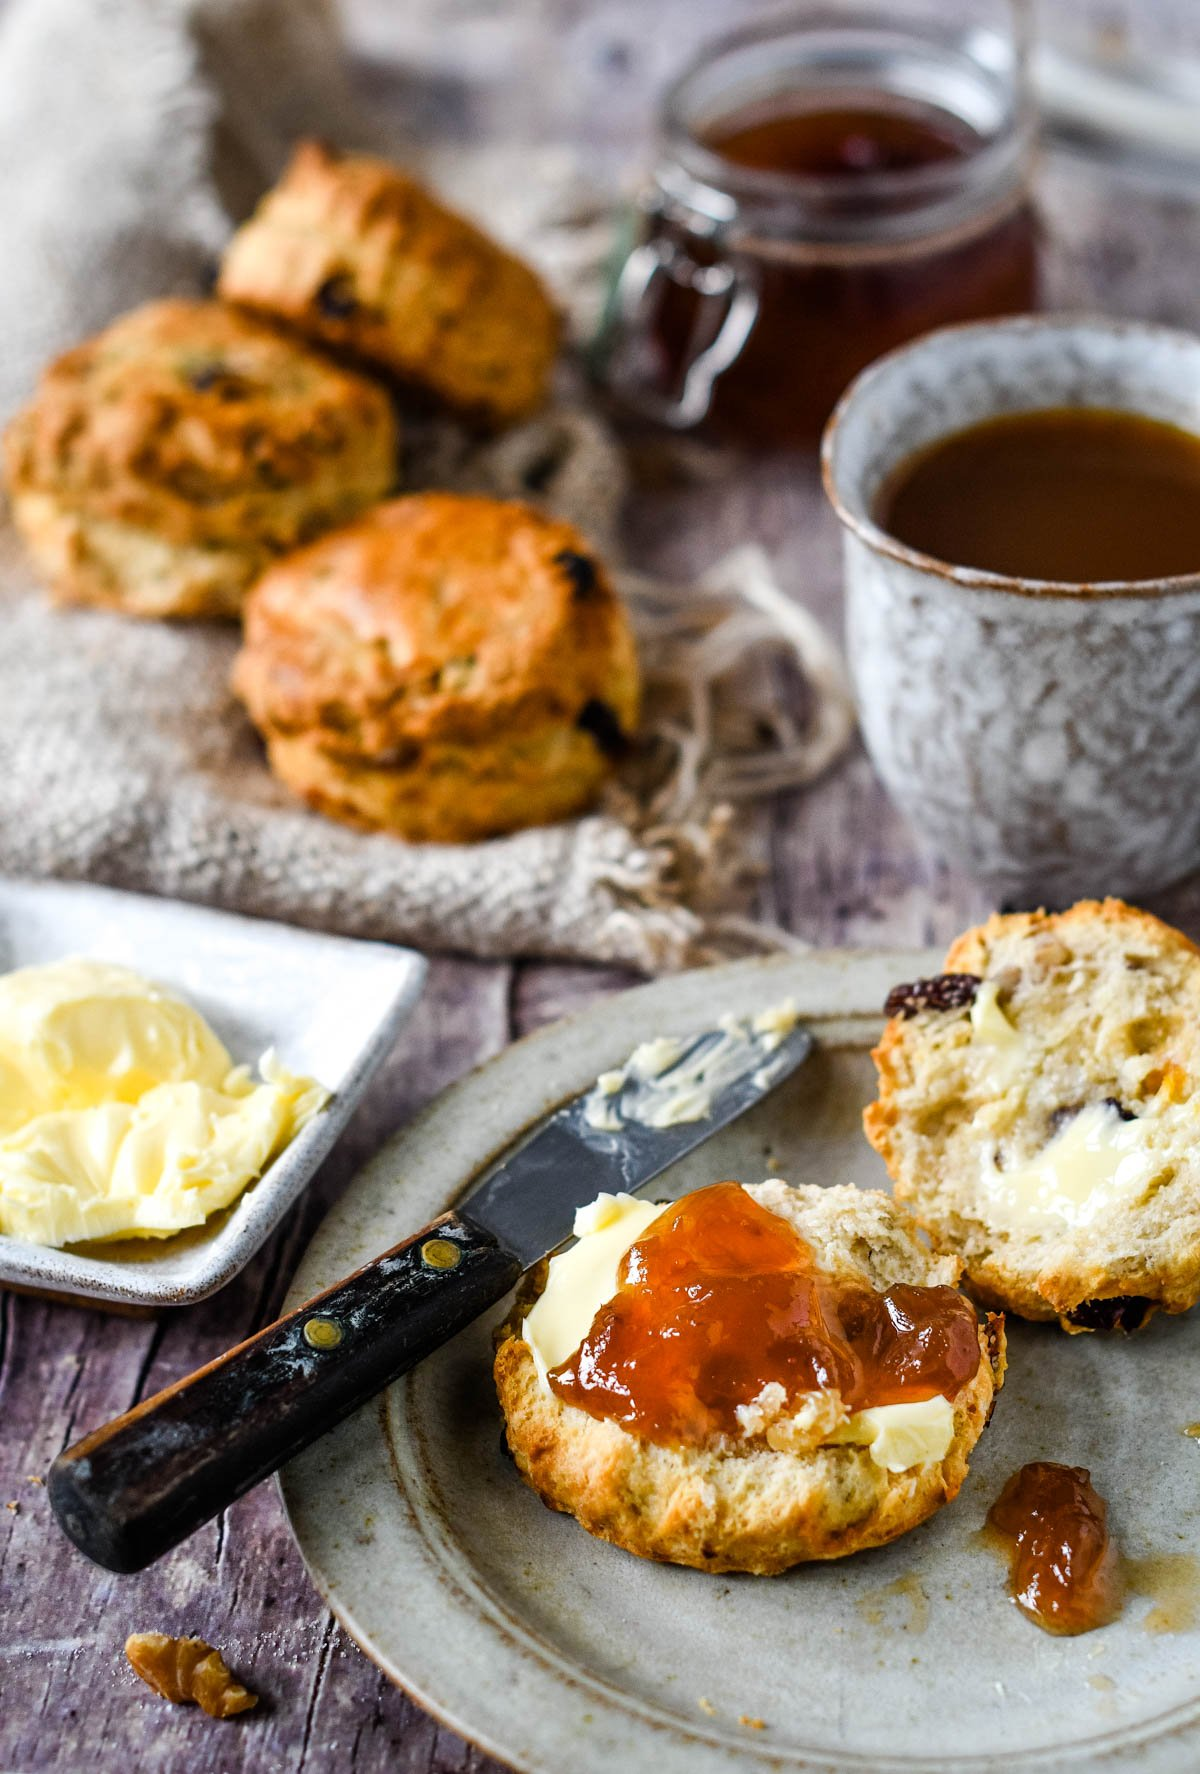 mixed fruit and nut scones on tea table with jam